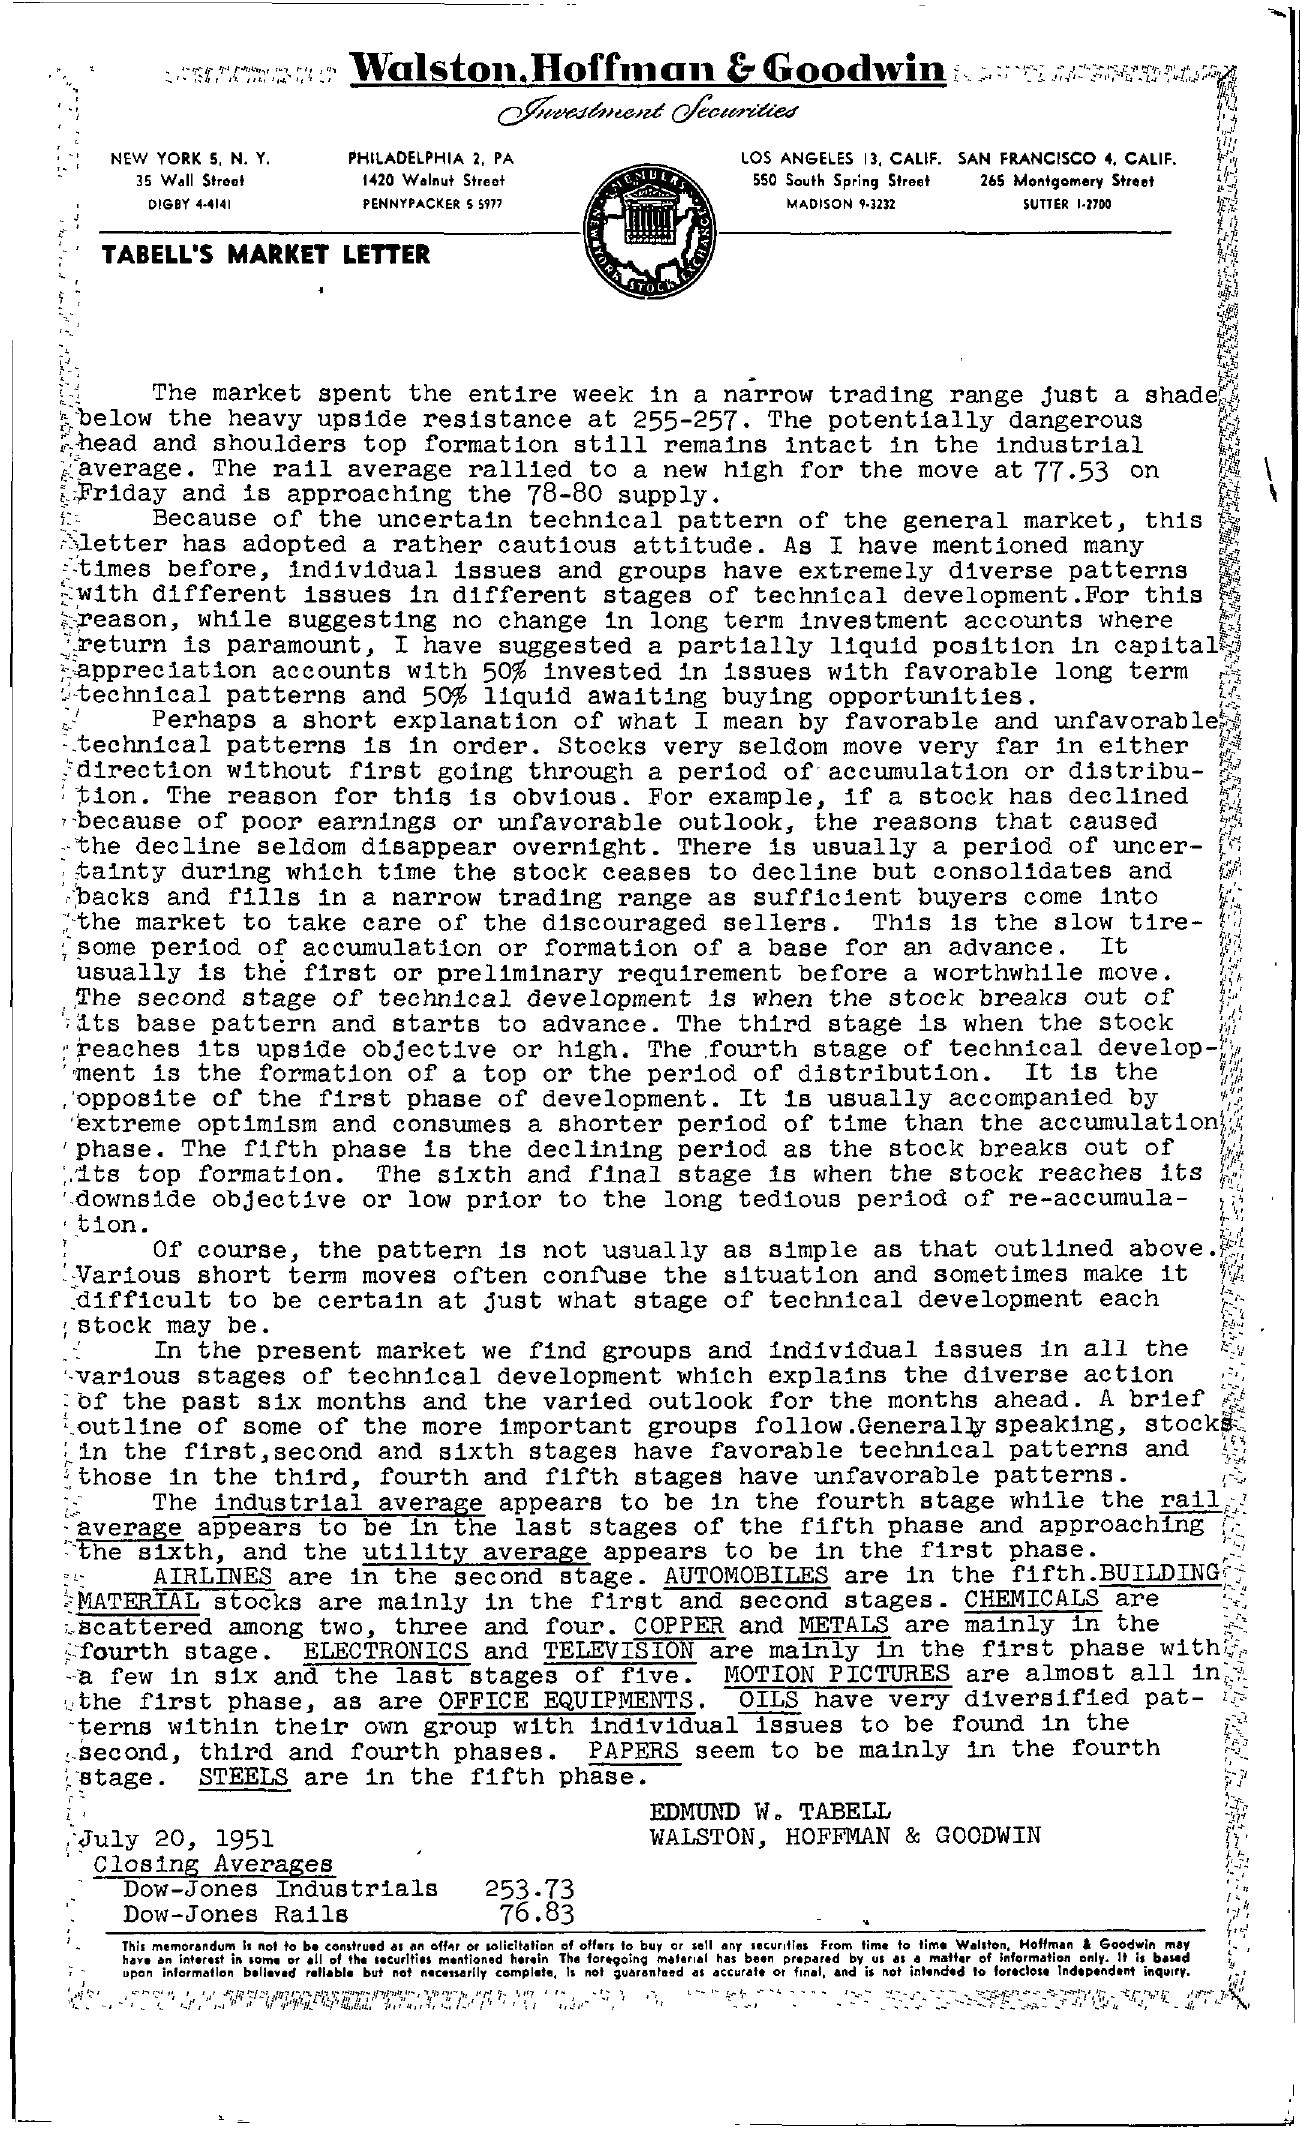 Tabell's Market Letter - July 20, 1951